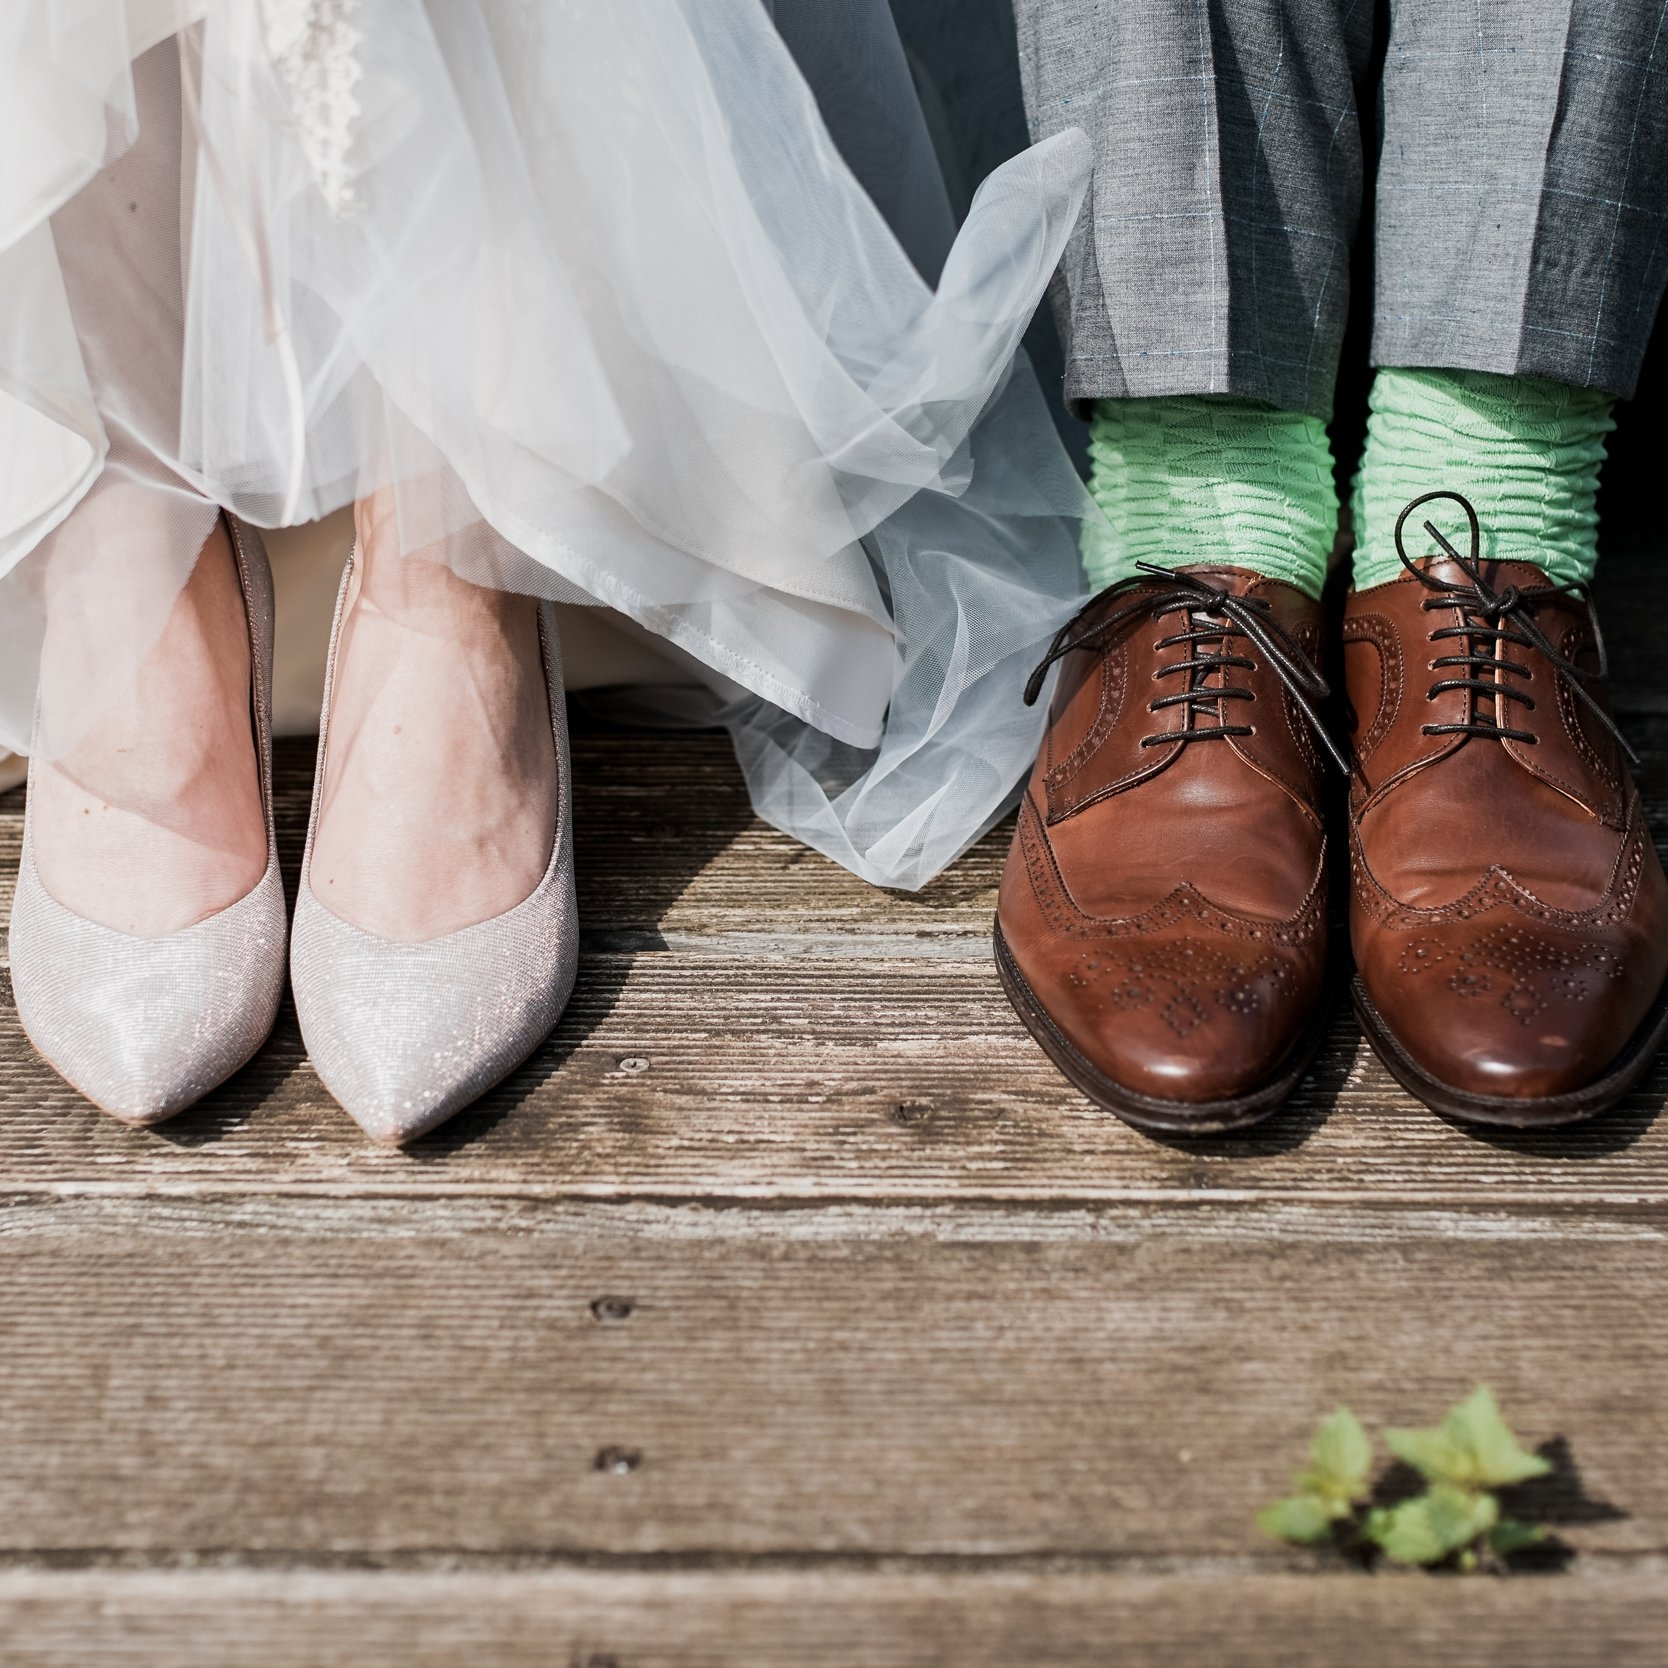 Midweek Weddings - Your mid-week wedding will be as special as a weekend wedding, just at a smaller price